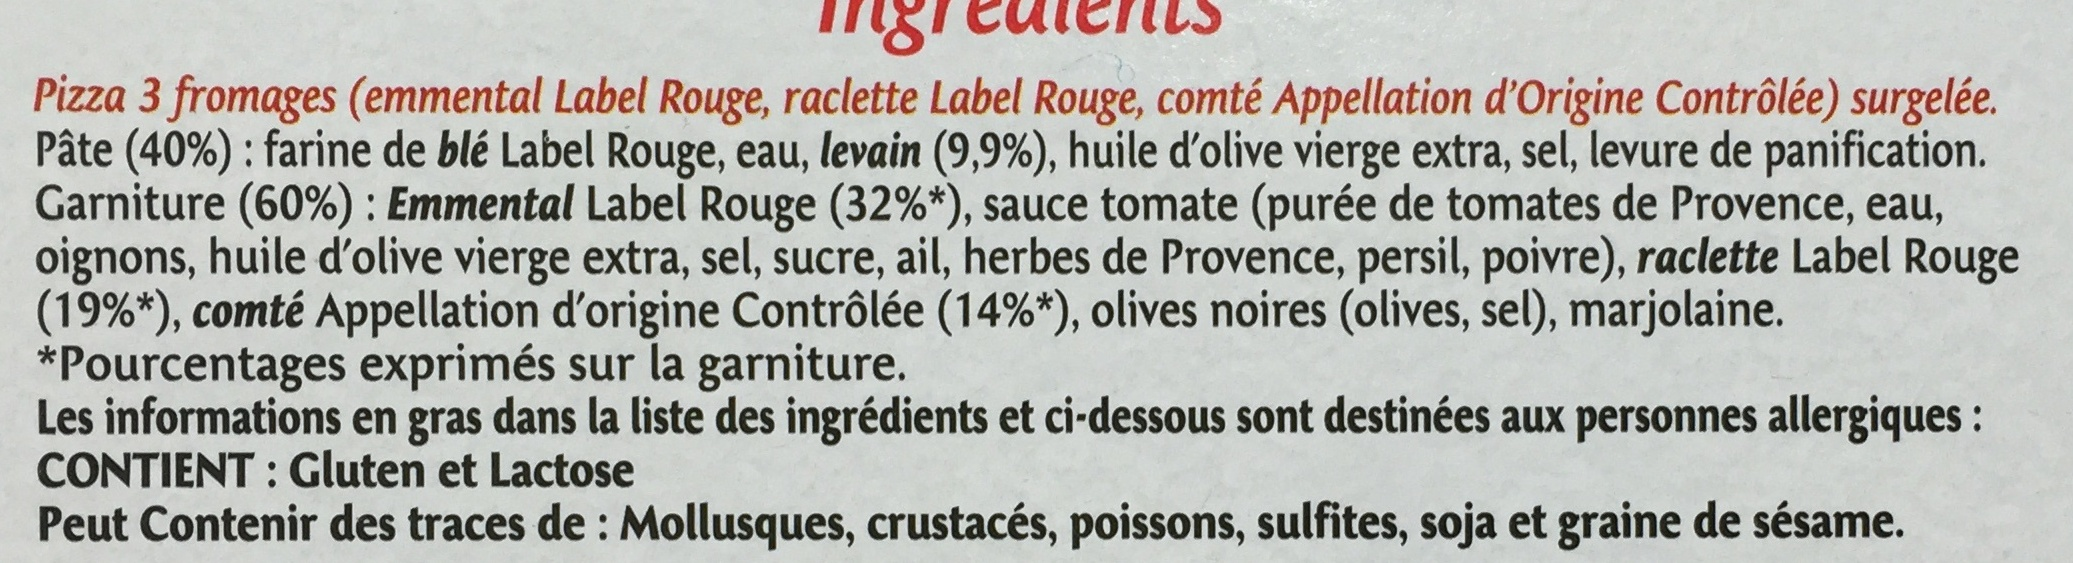 La Pizza 3 Fromages - Ingredients